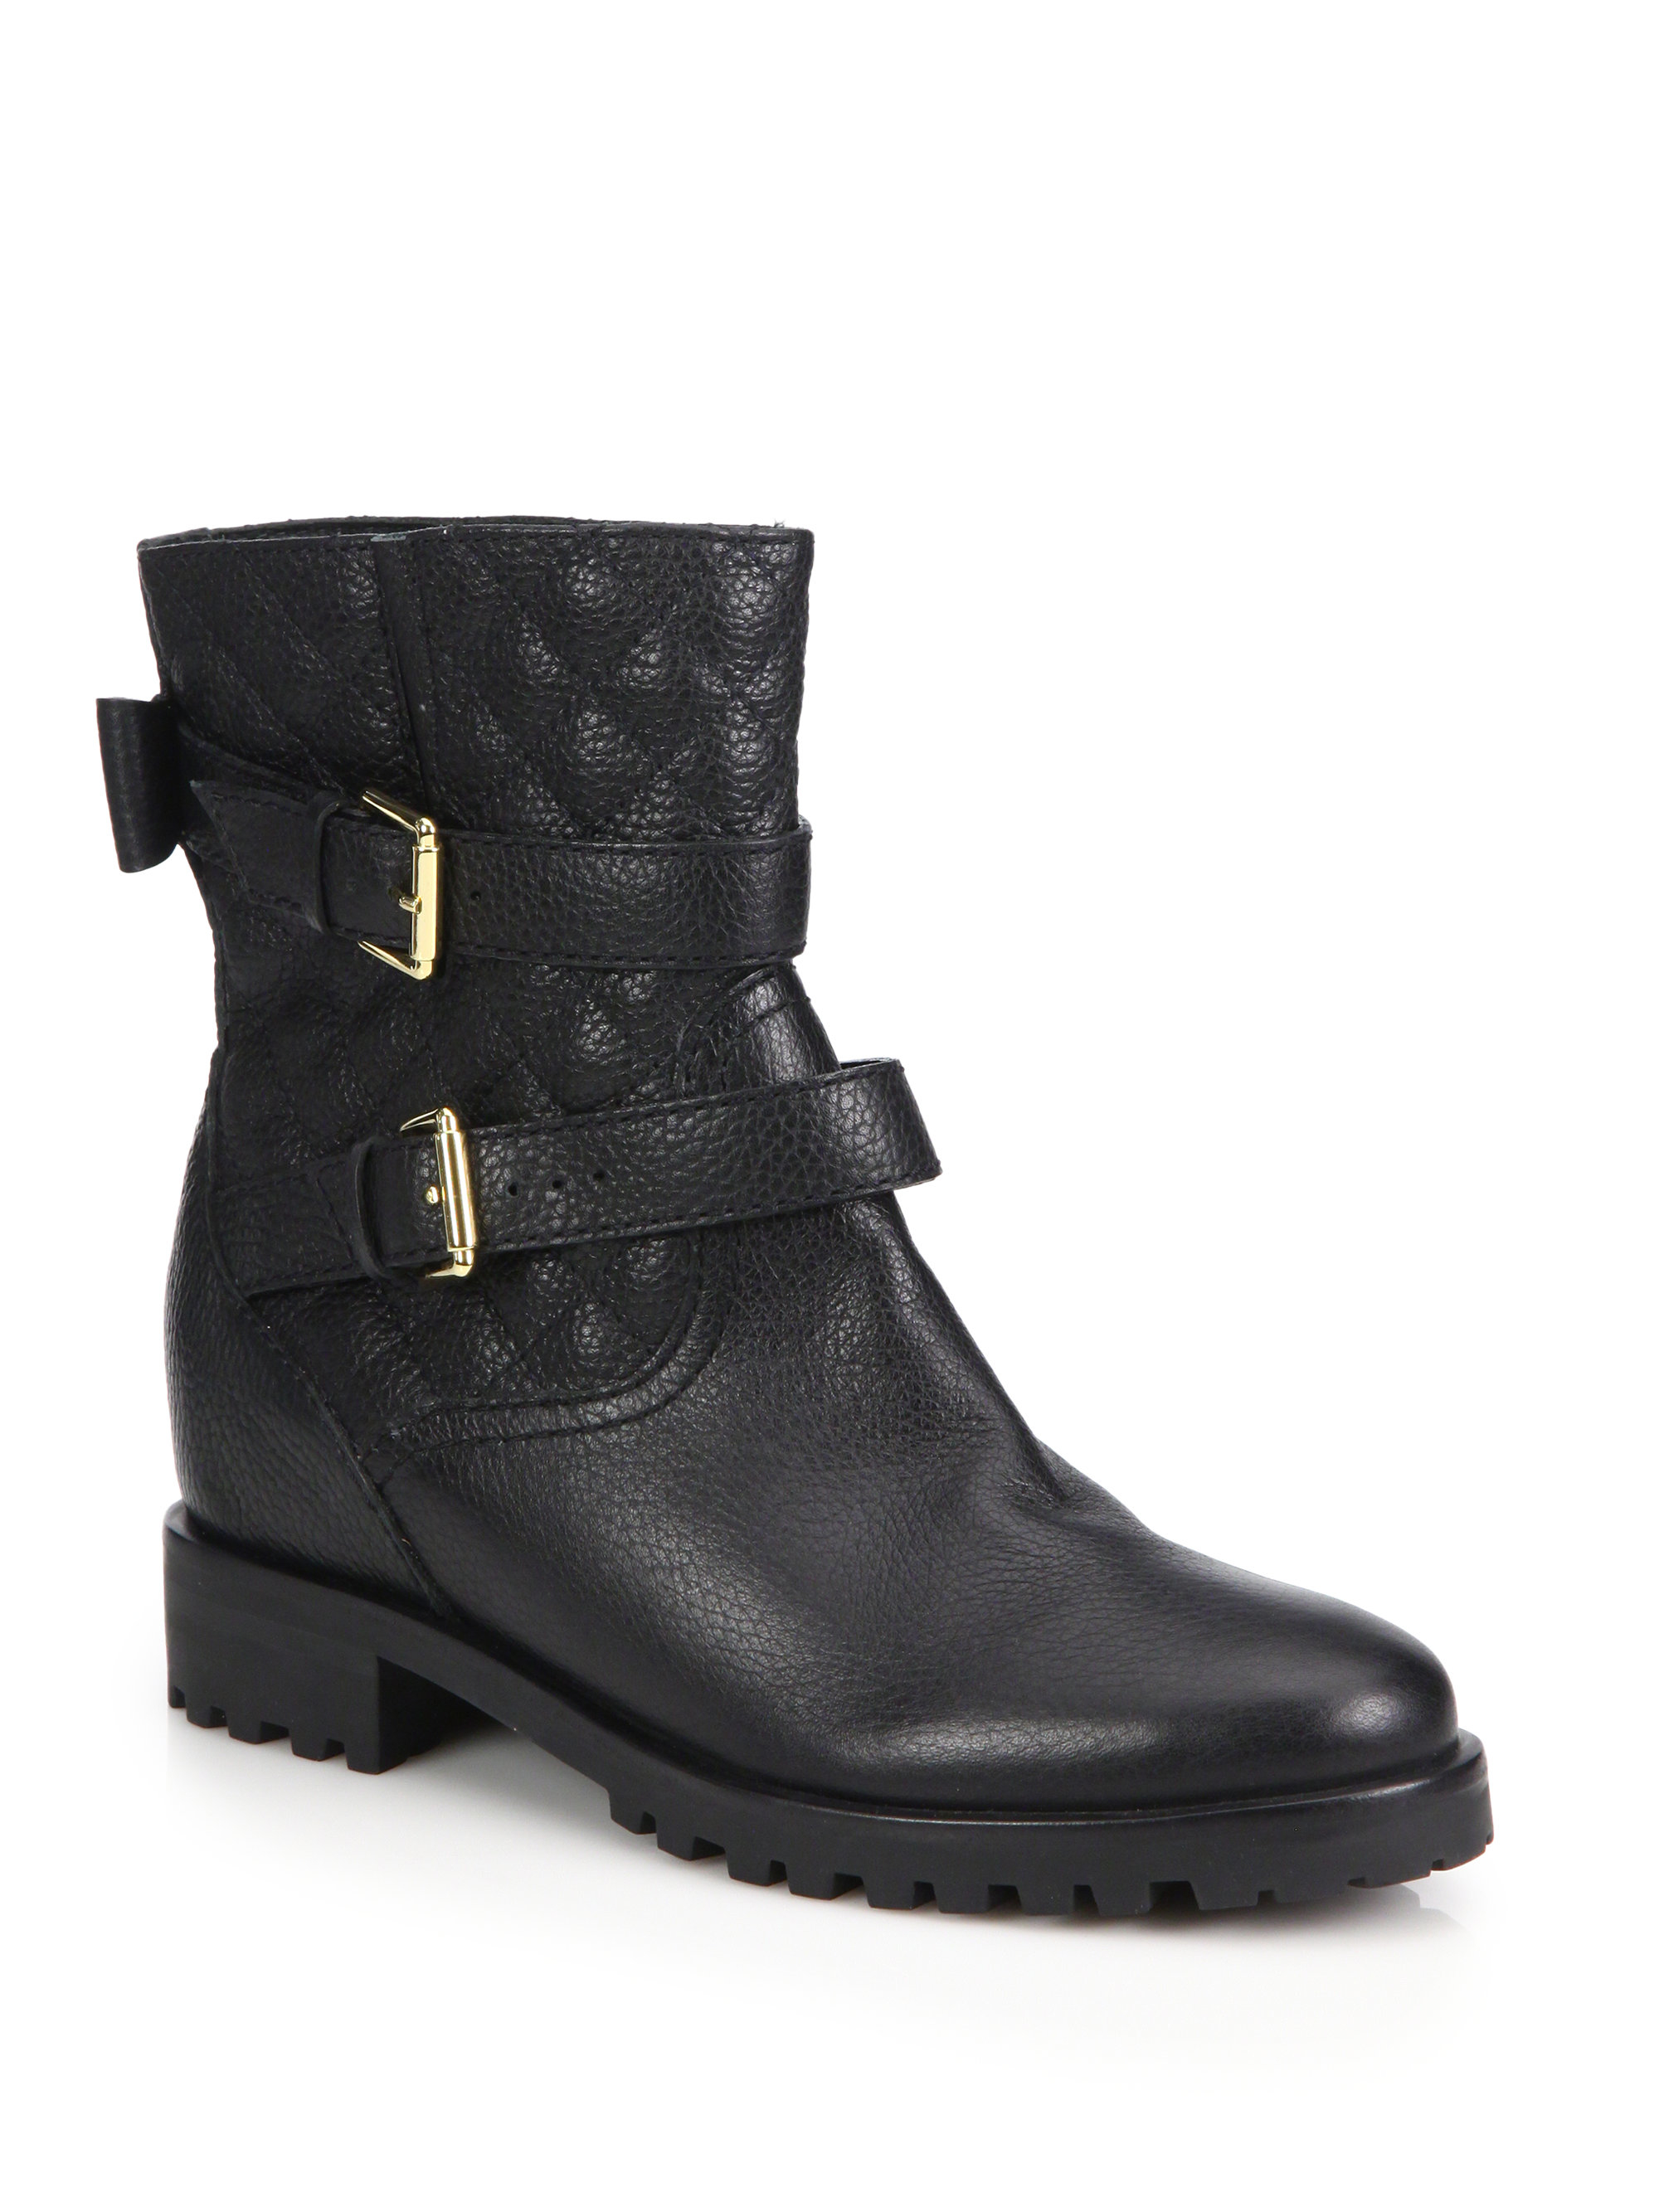 6b20f05b5342 Kate Spade Samara Quilted Leather Boots in Black - Lyst